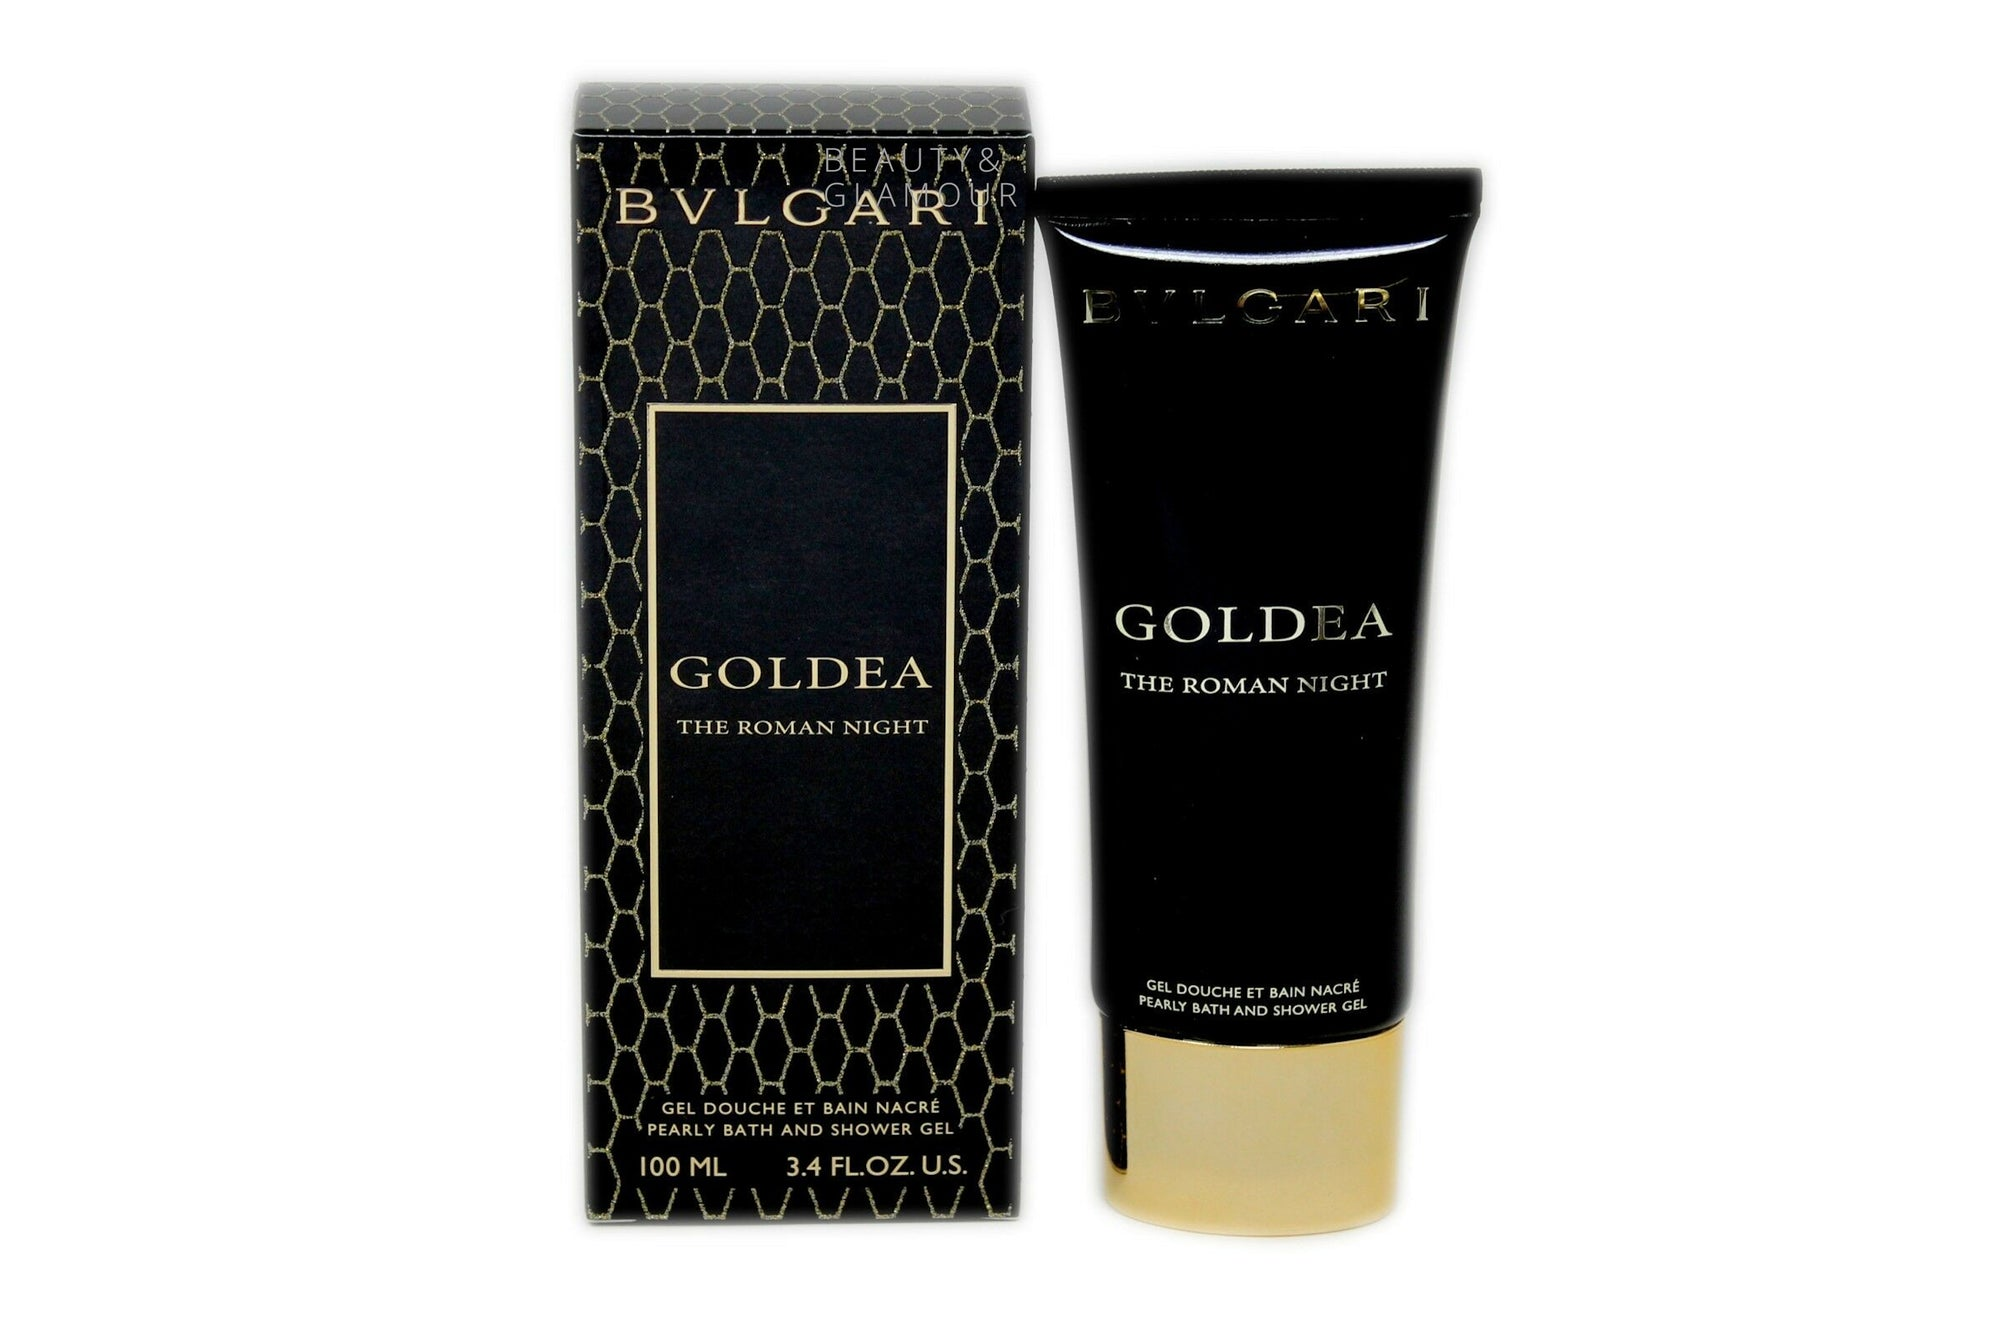 BVLGARI GOLDEA THE ROMAN NIGHT PEARLY BATH AND SHOWER GEL